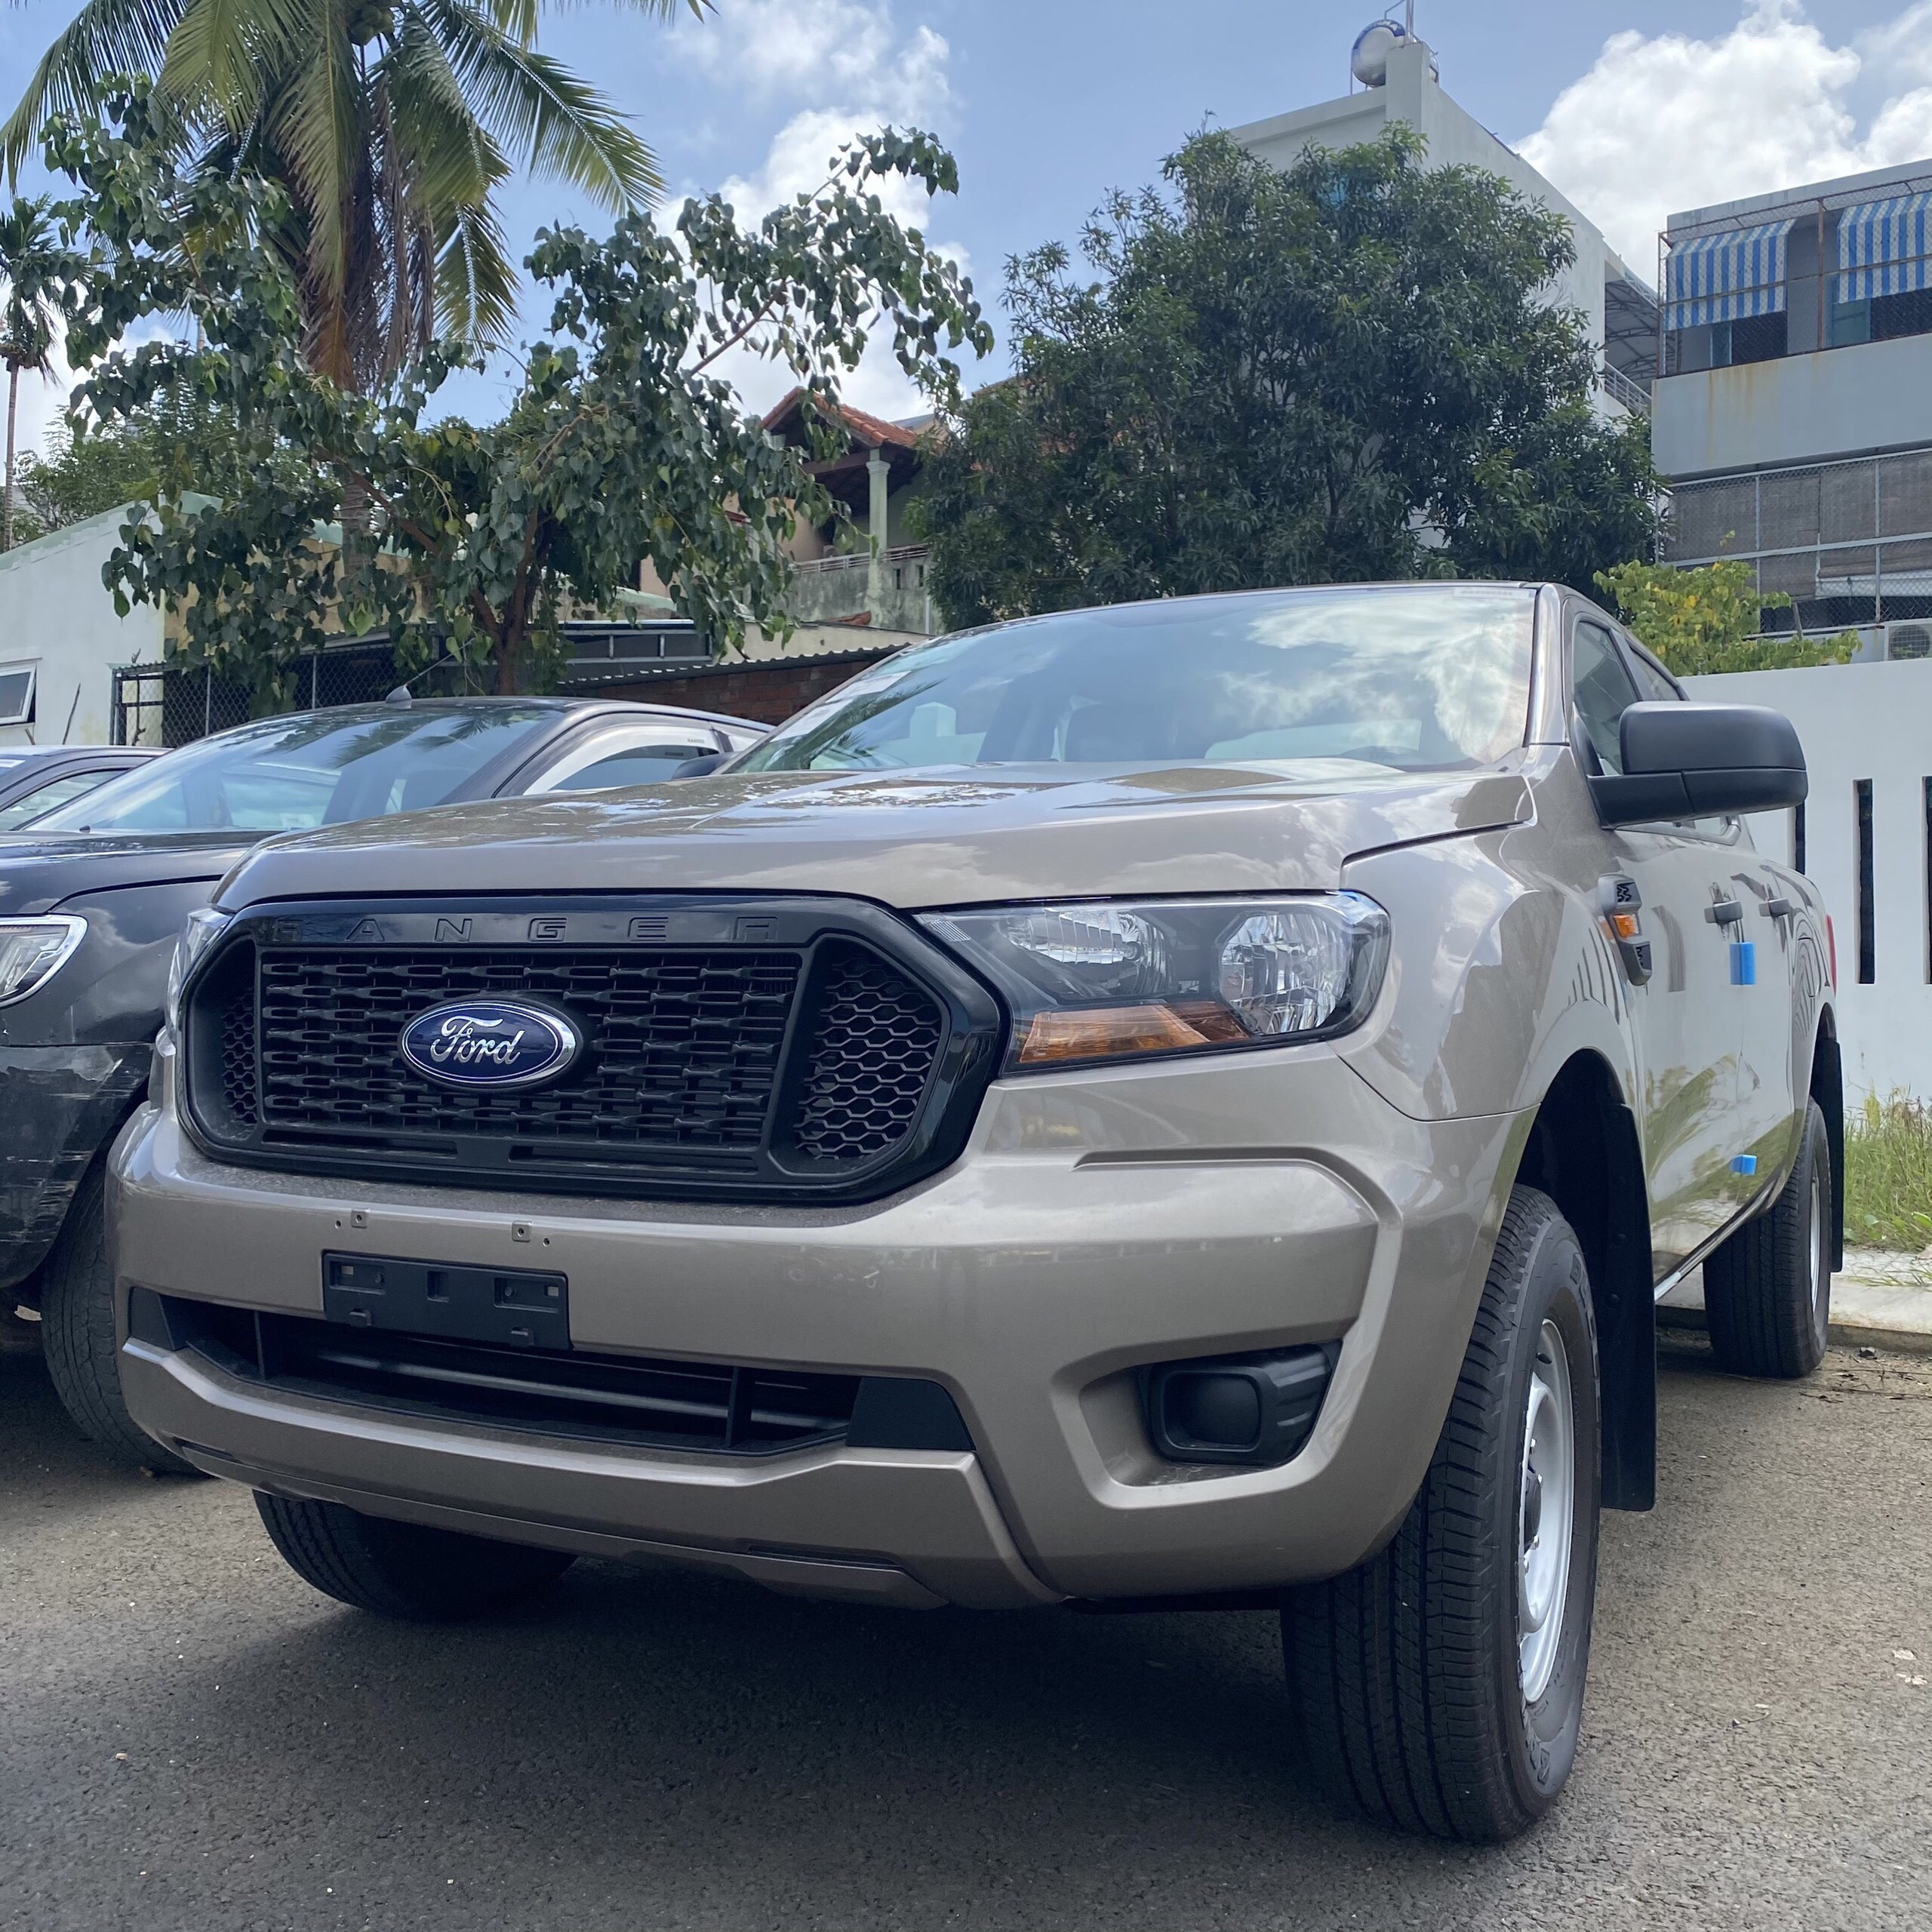 Ford Ranger XL 2.2L 4×4 MT10